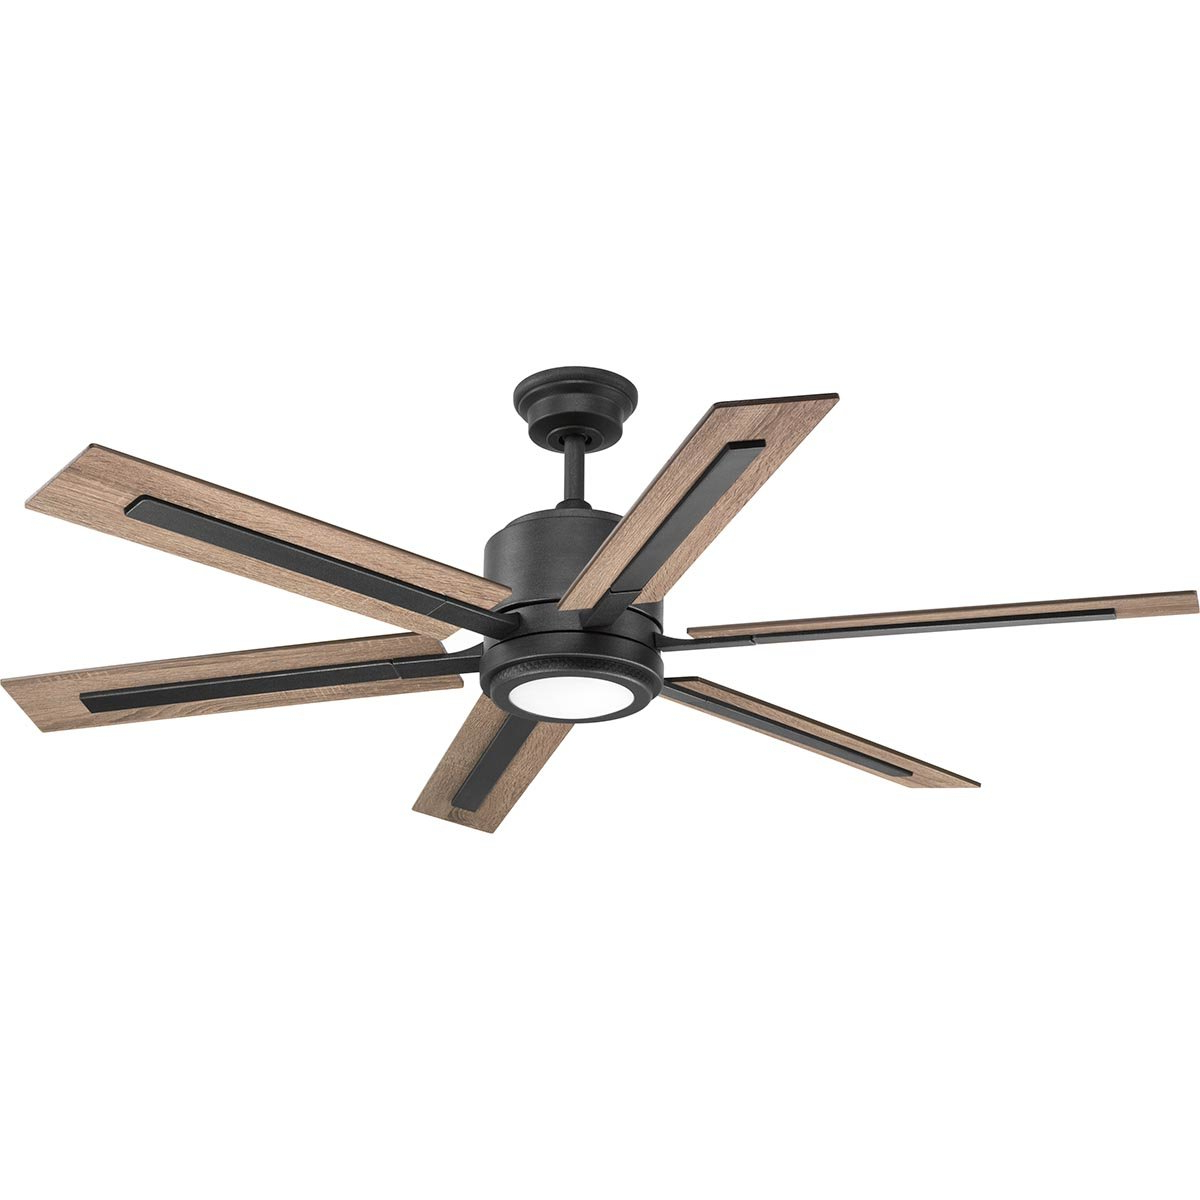 """Bankston 8 Blade Led Ceiling Fans With Regard To Most Current 60"""" Lesure 6 Blade Led Ceiling Fan With Remote, Light Kit Included (View 6 of 20)"""